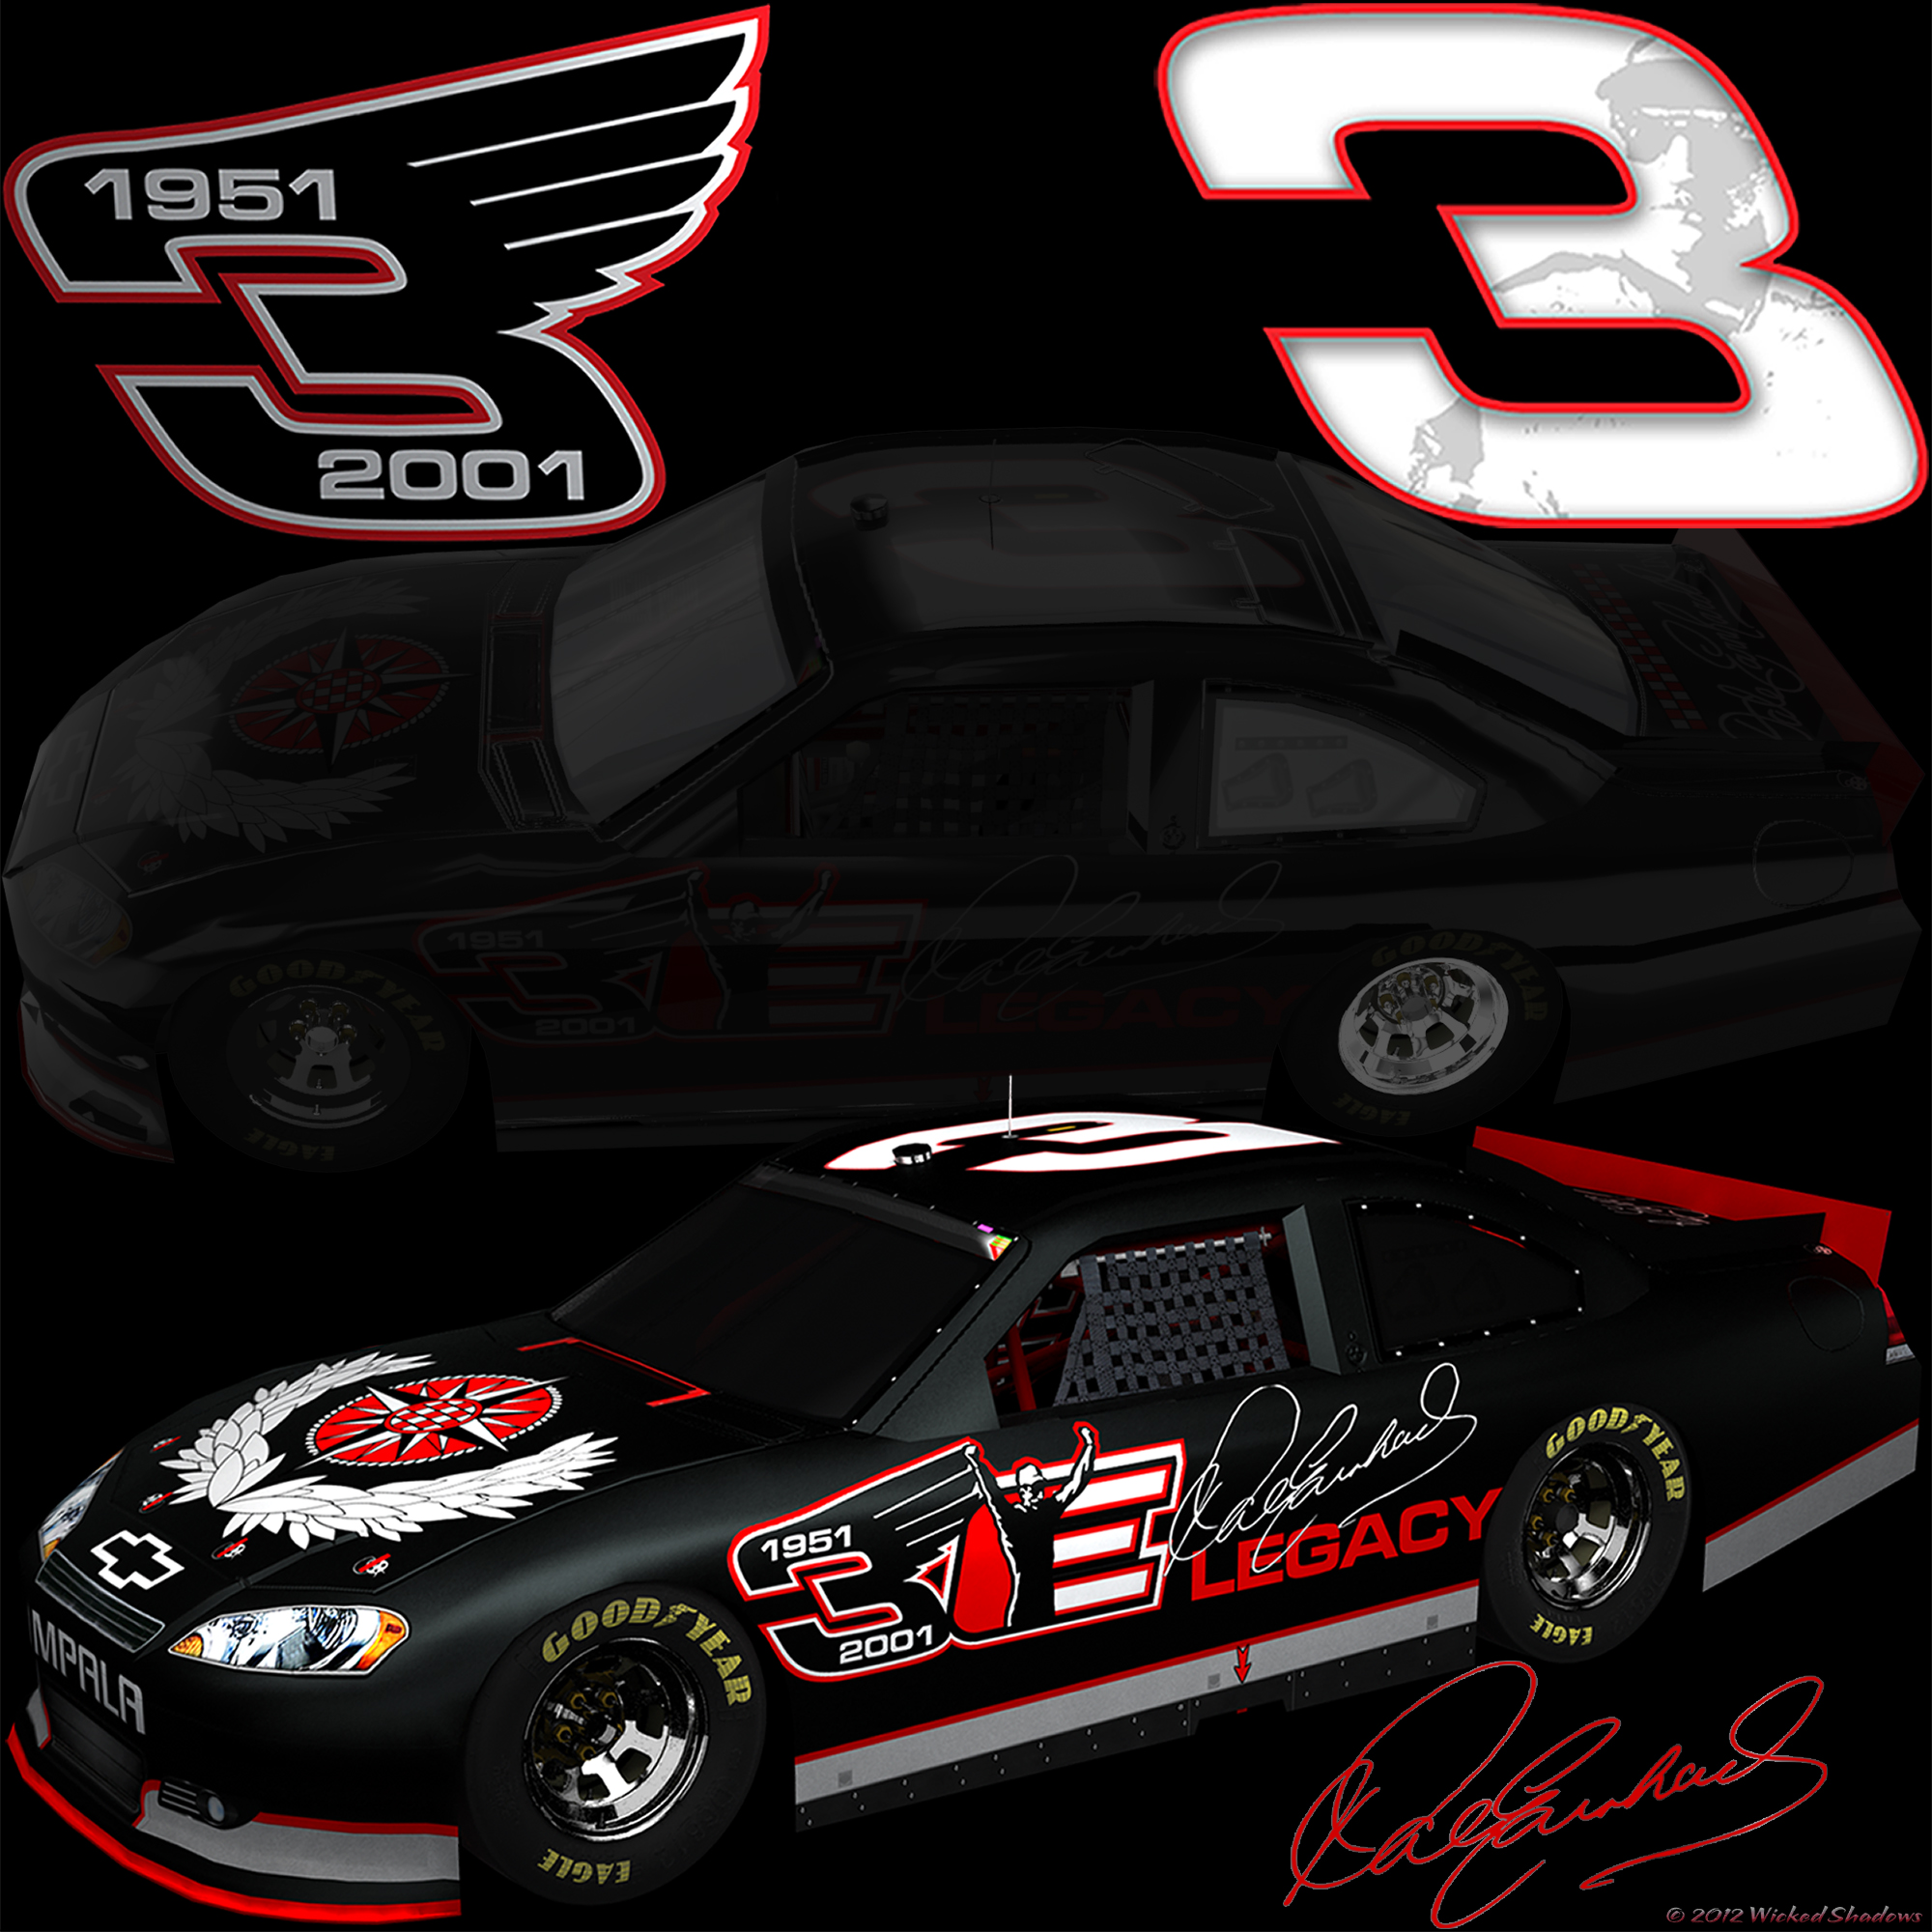 Wallpapers By Wicked Shadows: Dale Earnhardt Sr Blackout